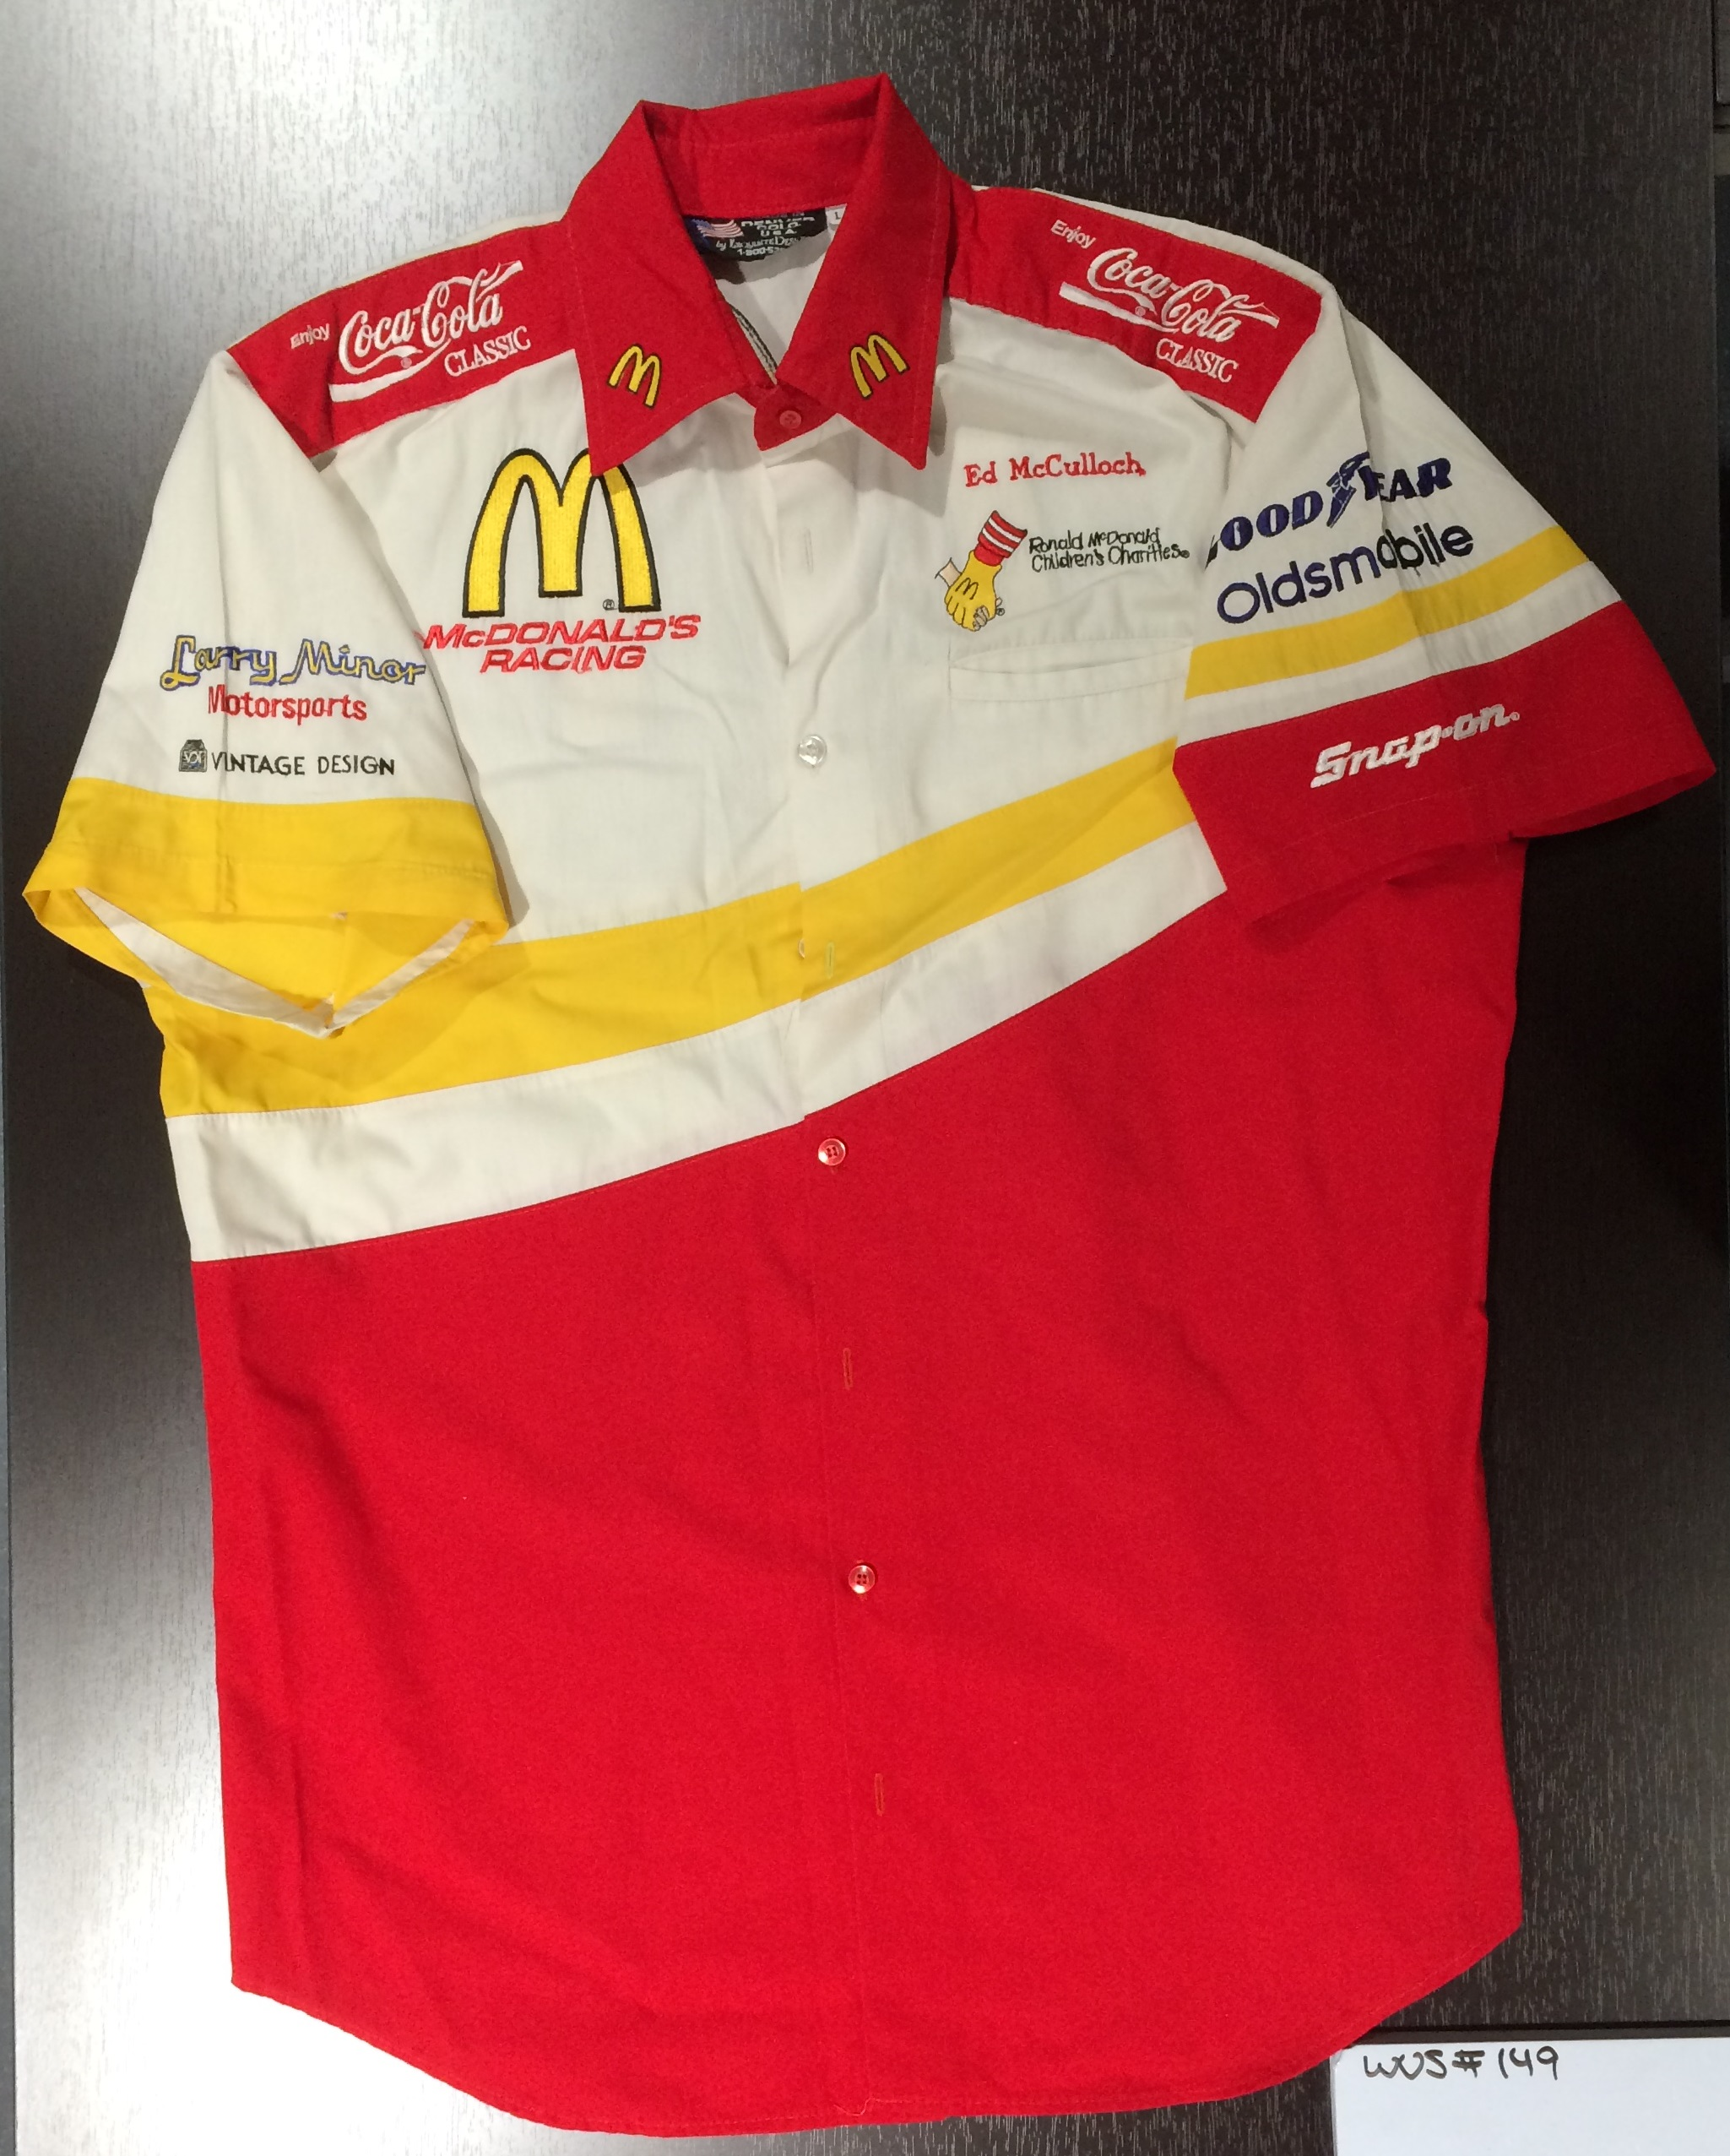 Ed McCulloch, Ronald McDonald Children's Charity, Larry Minor Motorsports Buttondown Shirt; WOS#0149